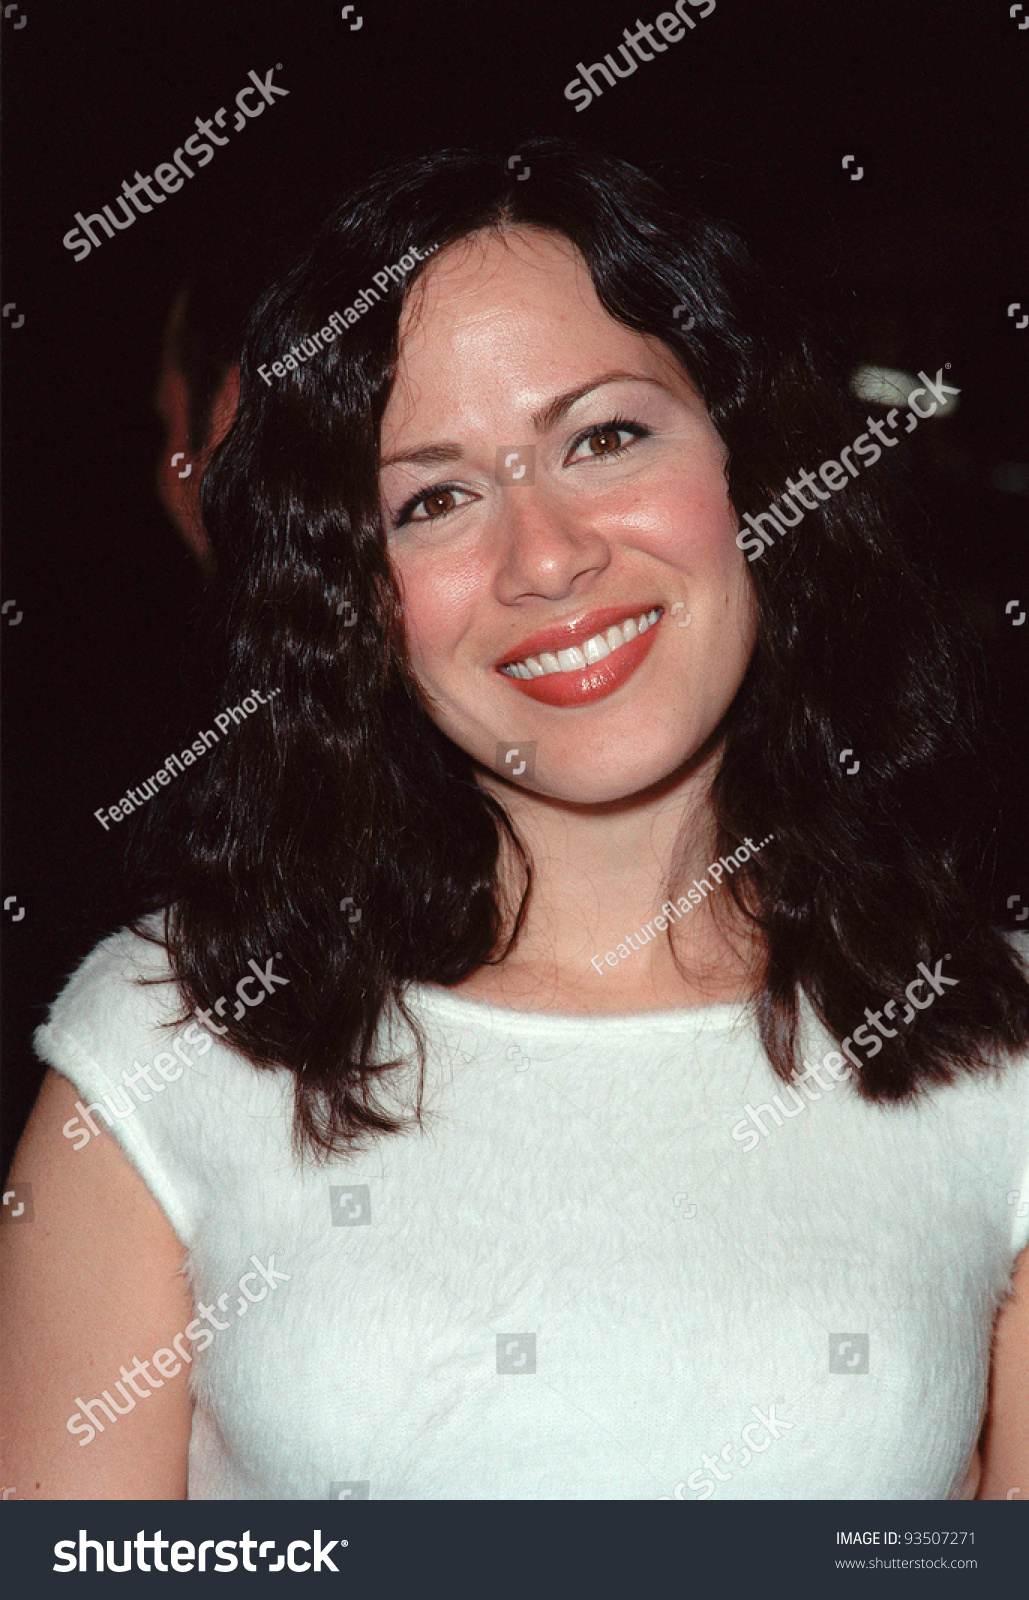 shannon lee pictures